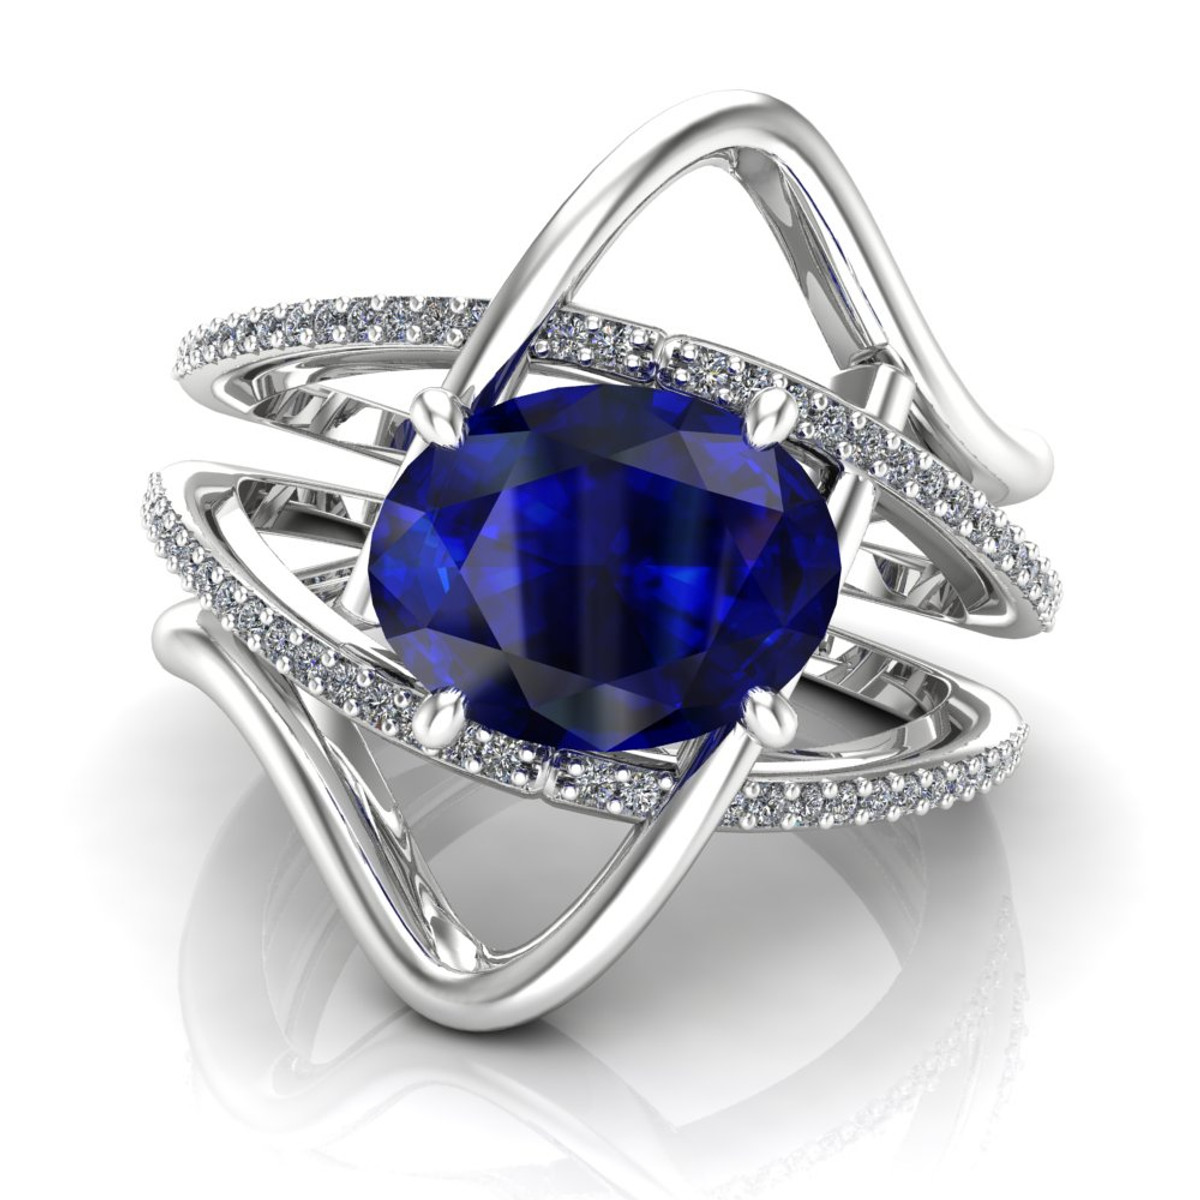 shiva rings boutique ring safire sapphire engagement blue diamond image product pear